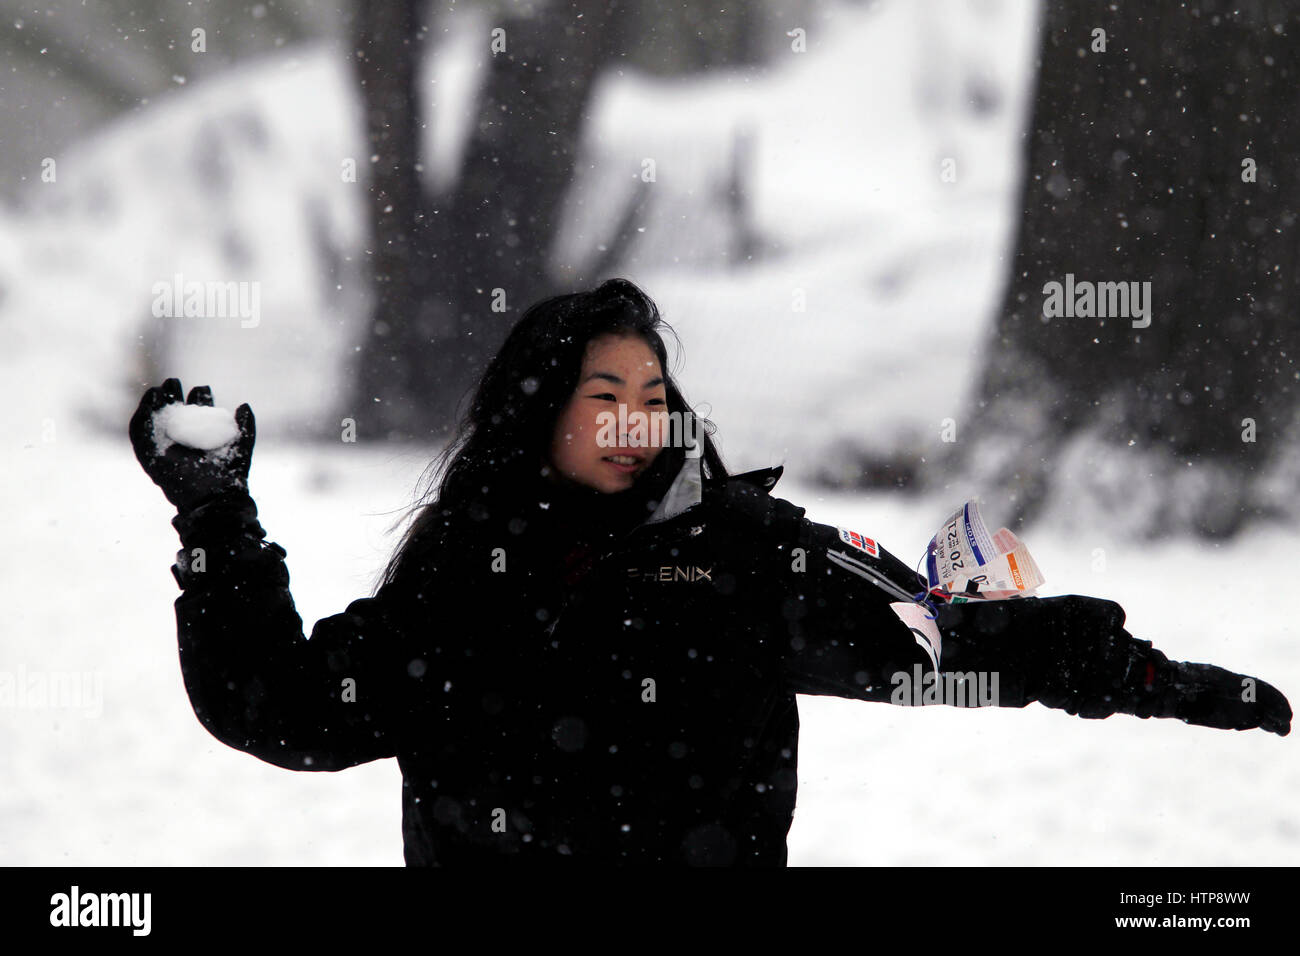 New York, United States. 14th Mar, 2017. A woman throws a snowball at her companion in New York City's Central - Stock Image